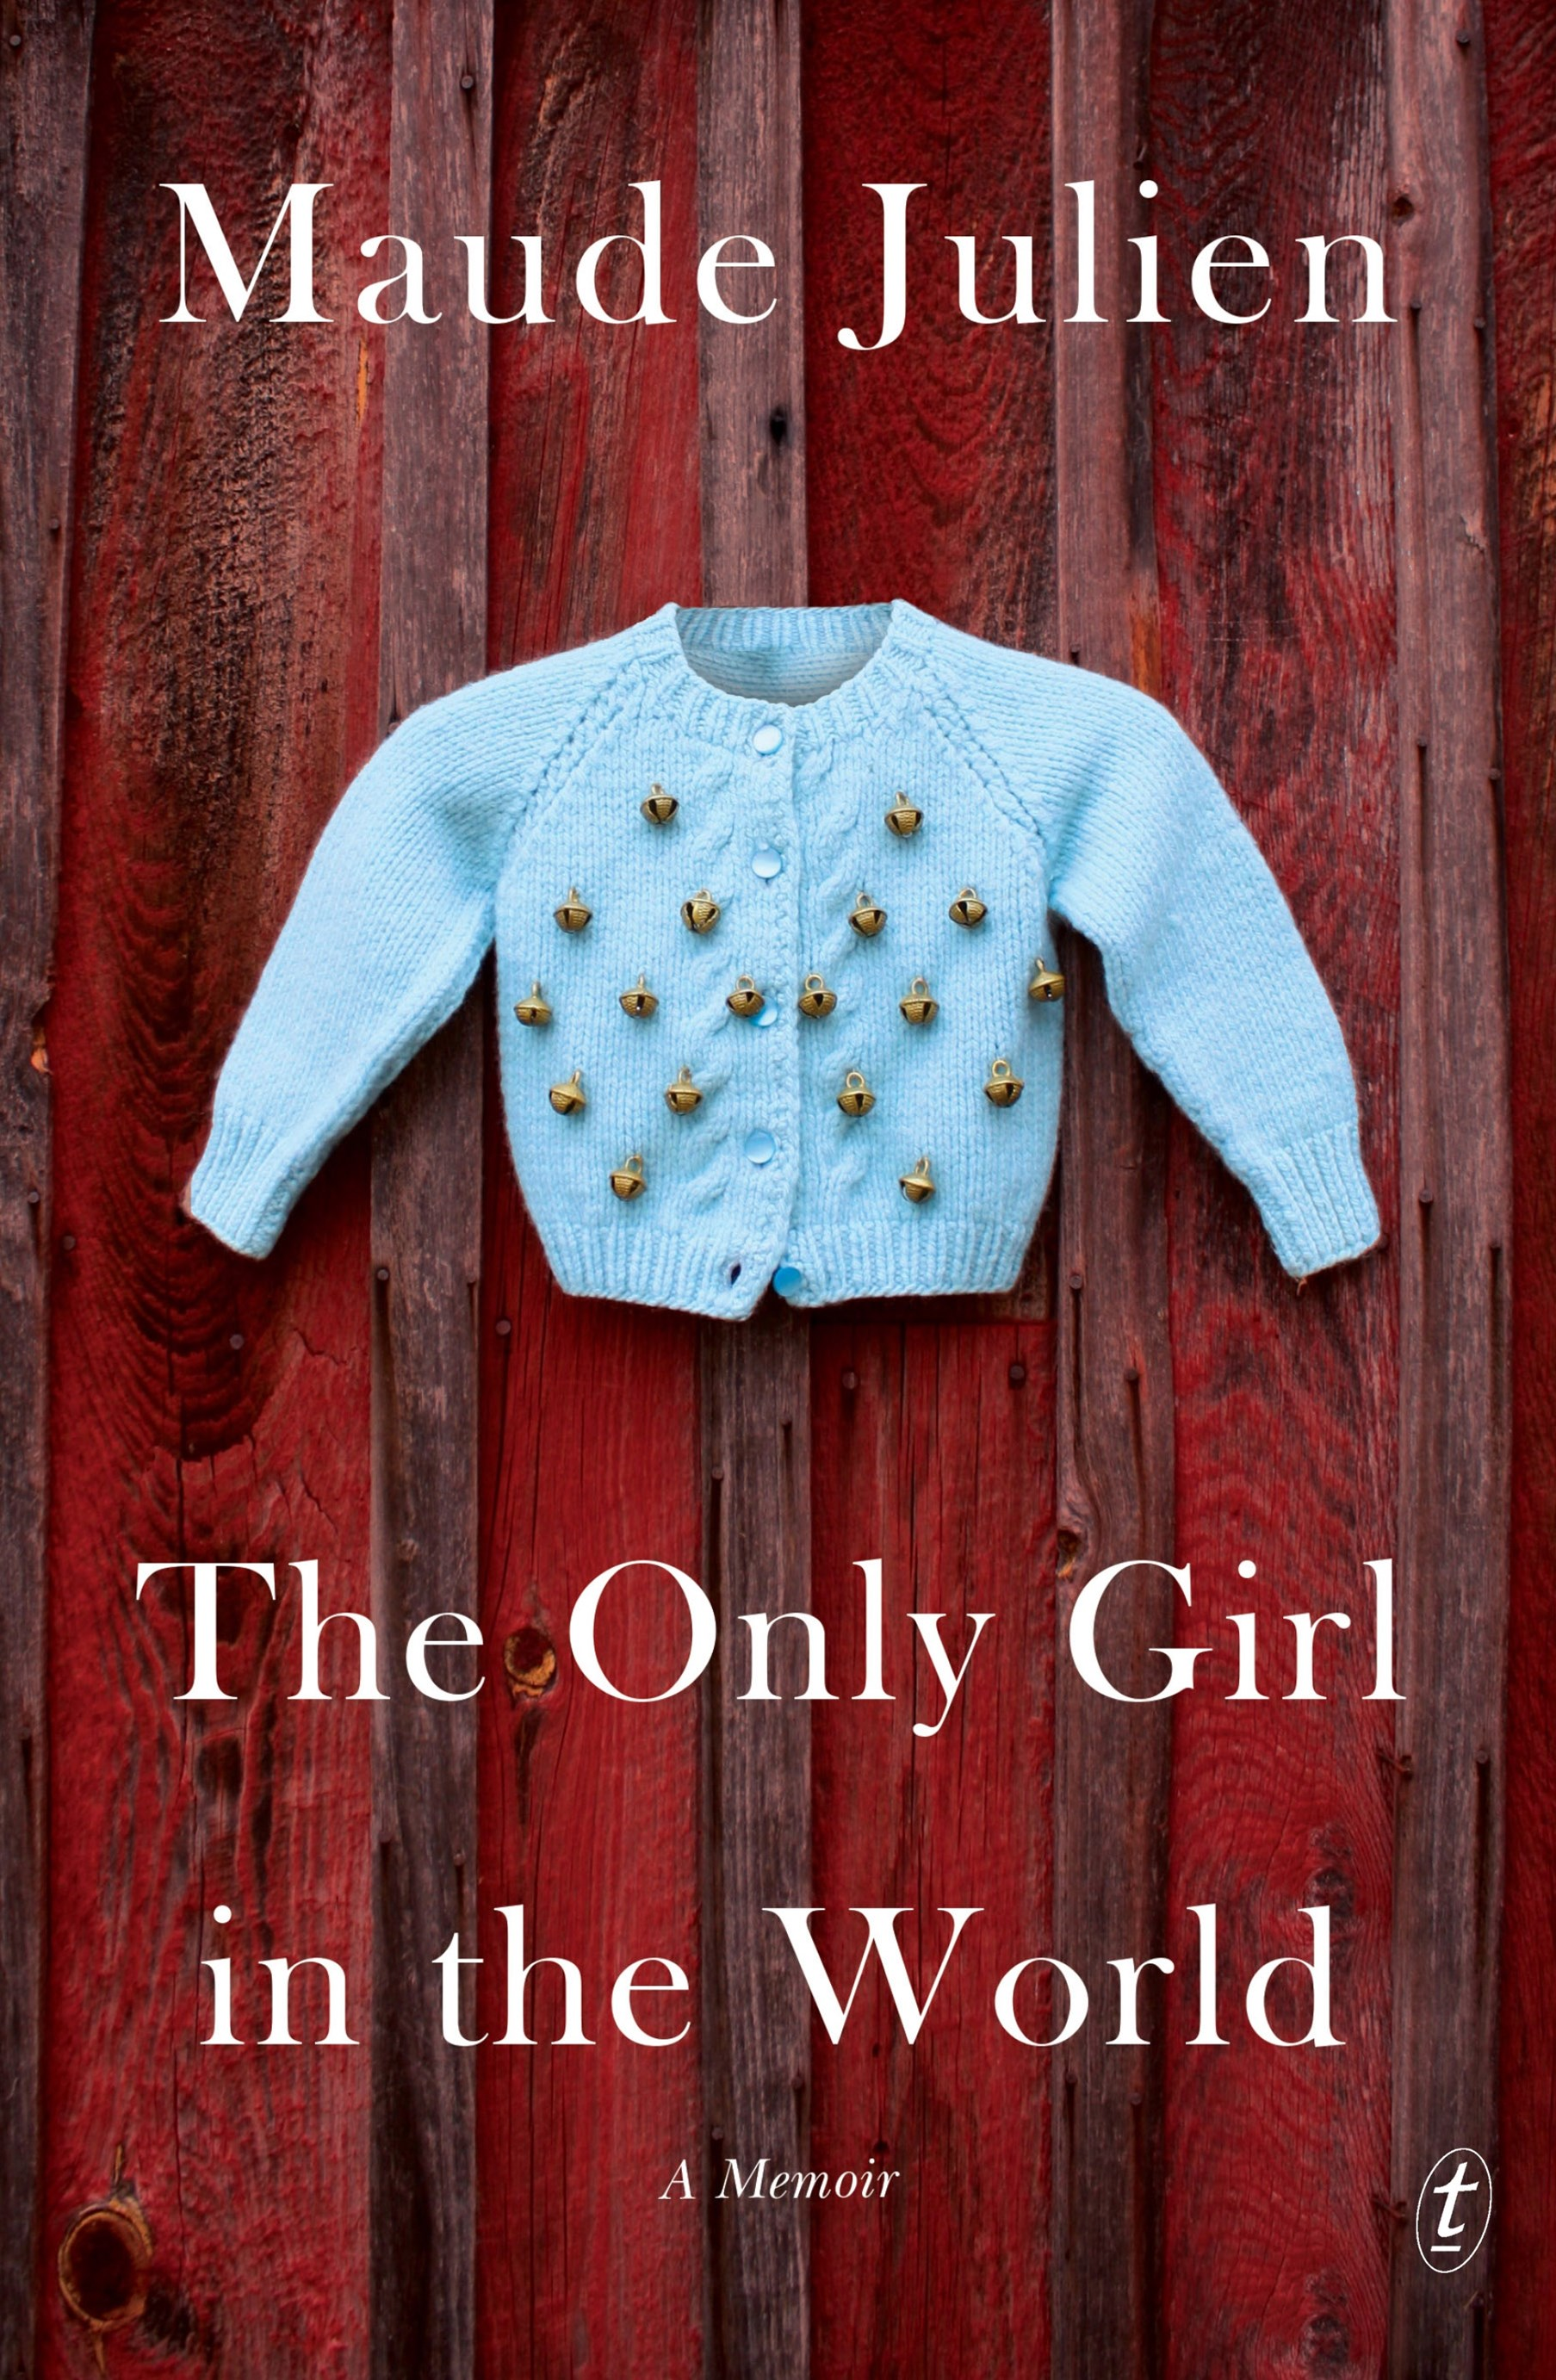 The Only Girl in the World: A Memoir